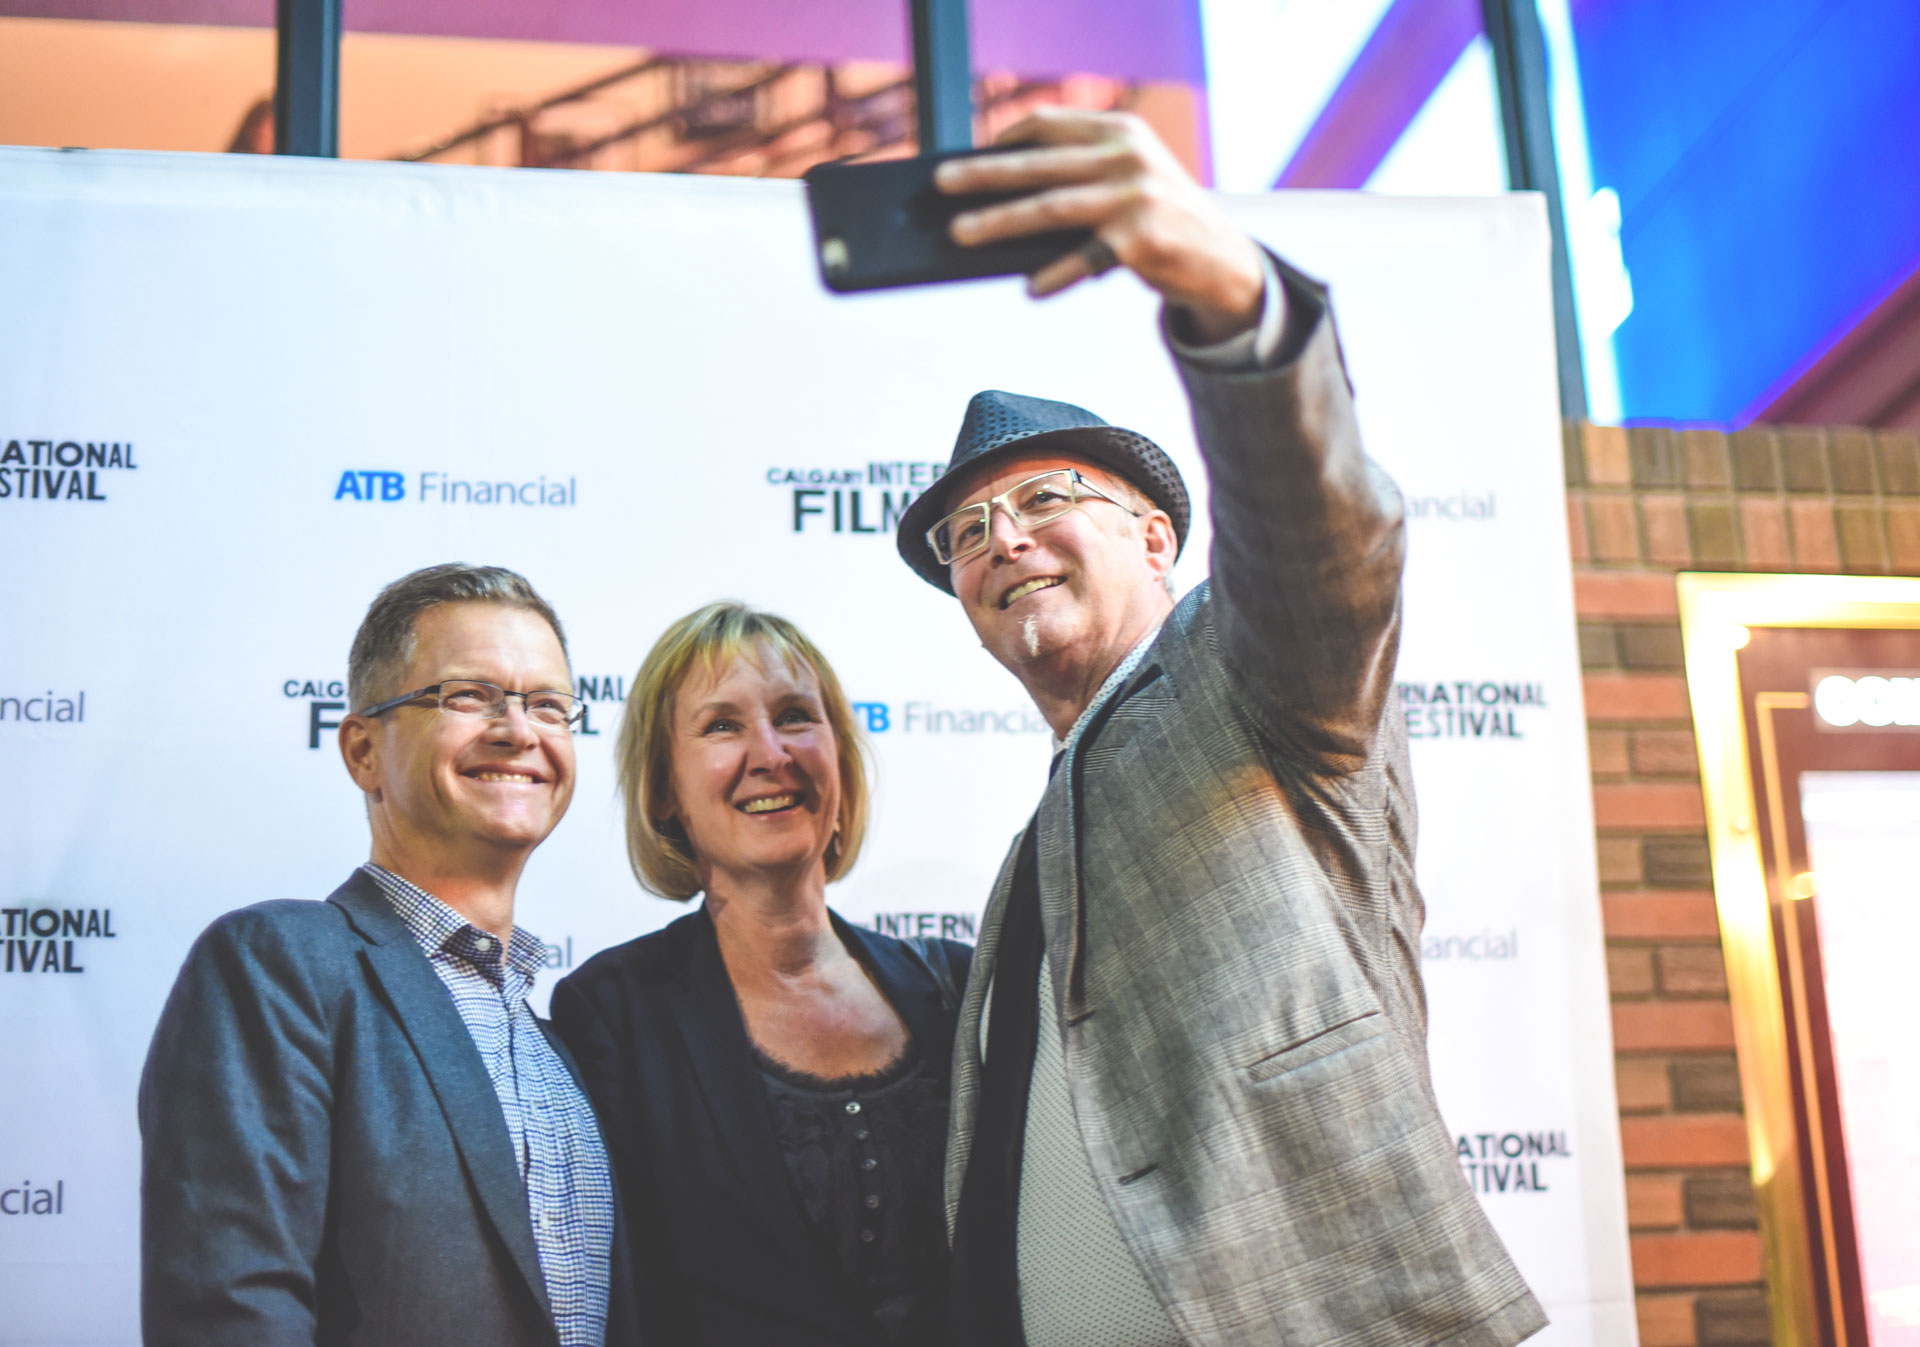 Watch over 100 films and meet emerging filmmakers at the Calgary International Film Festival.